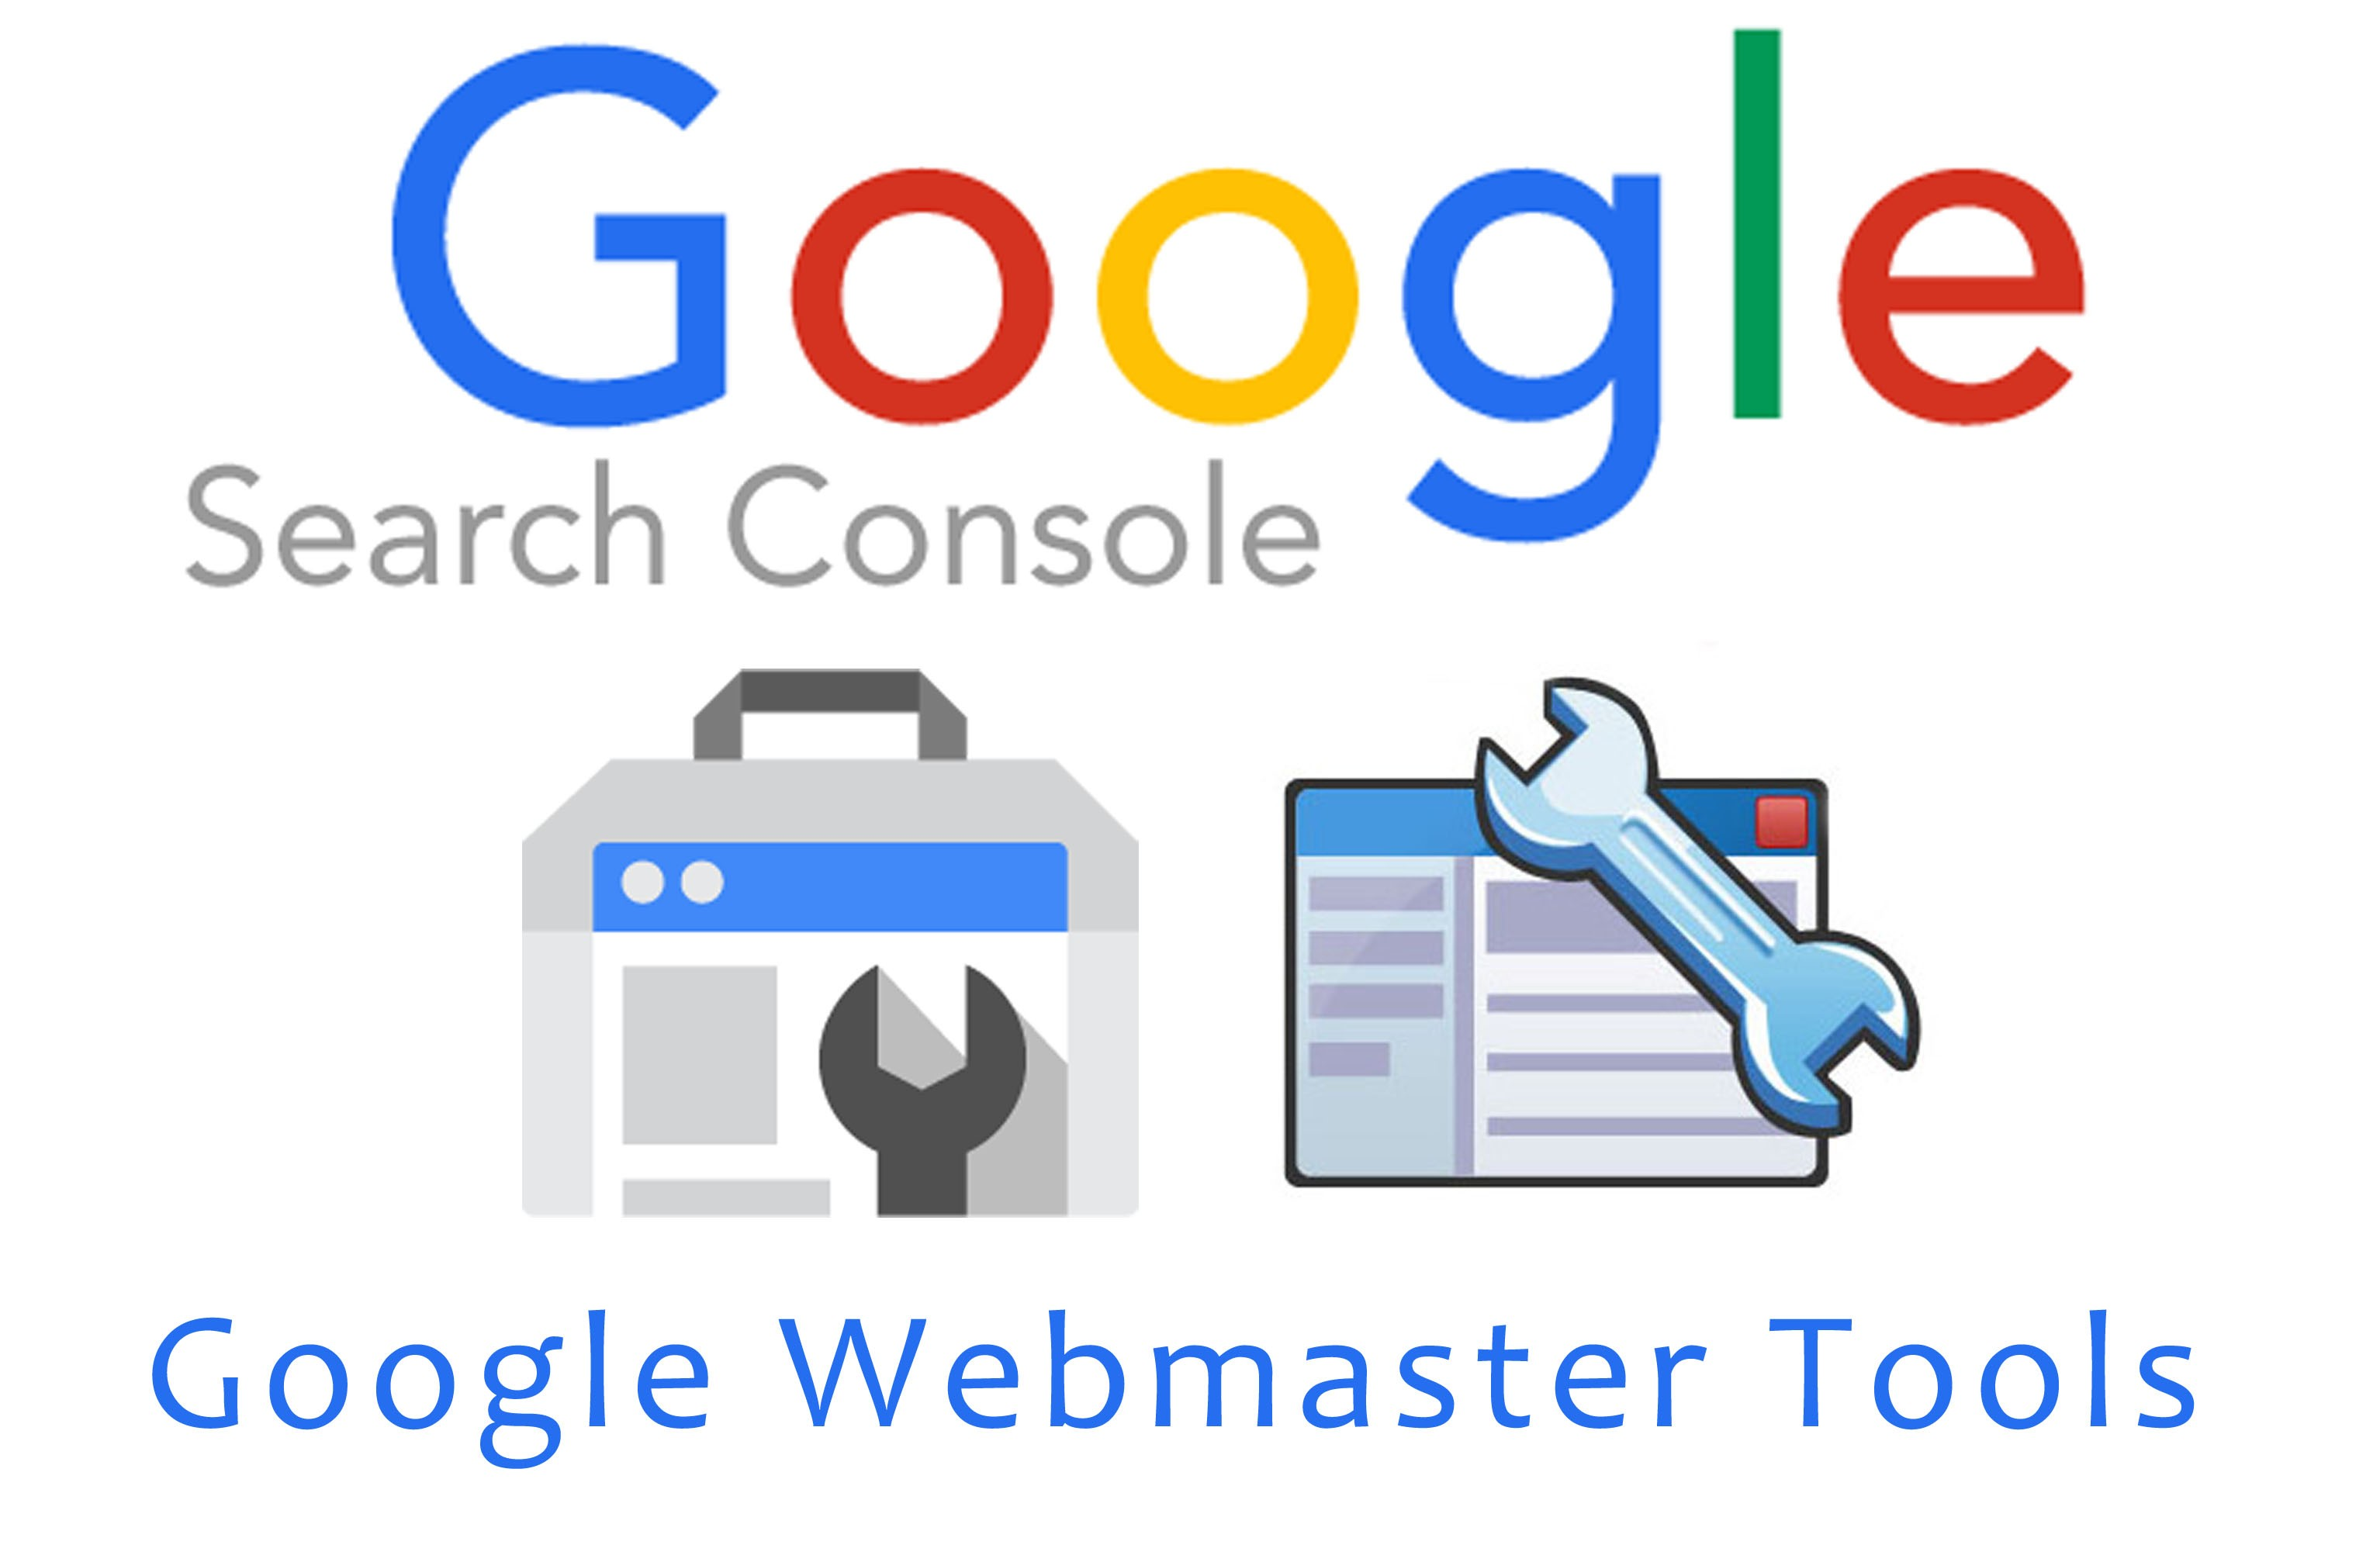 How to use Google Webmaster tool or Search Console to Submit Your Website URL